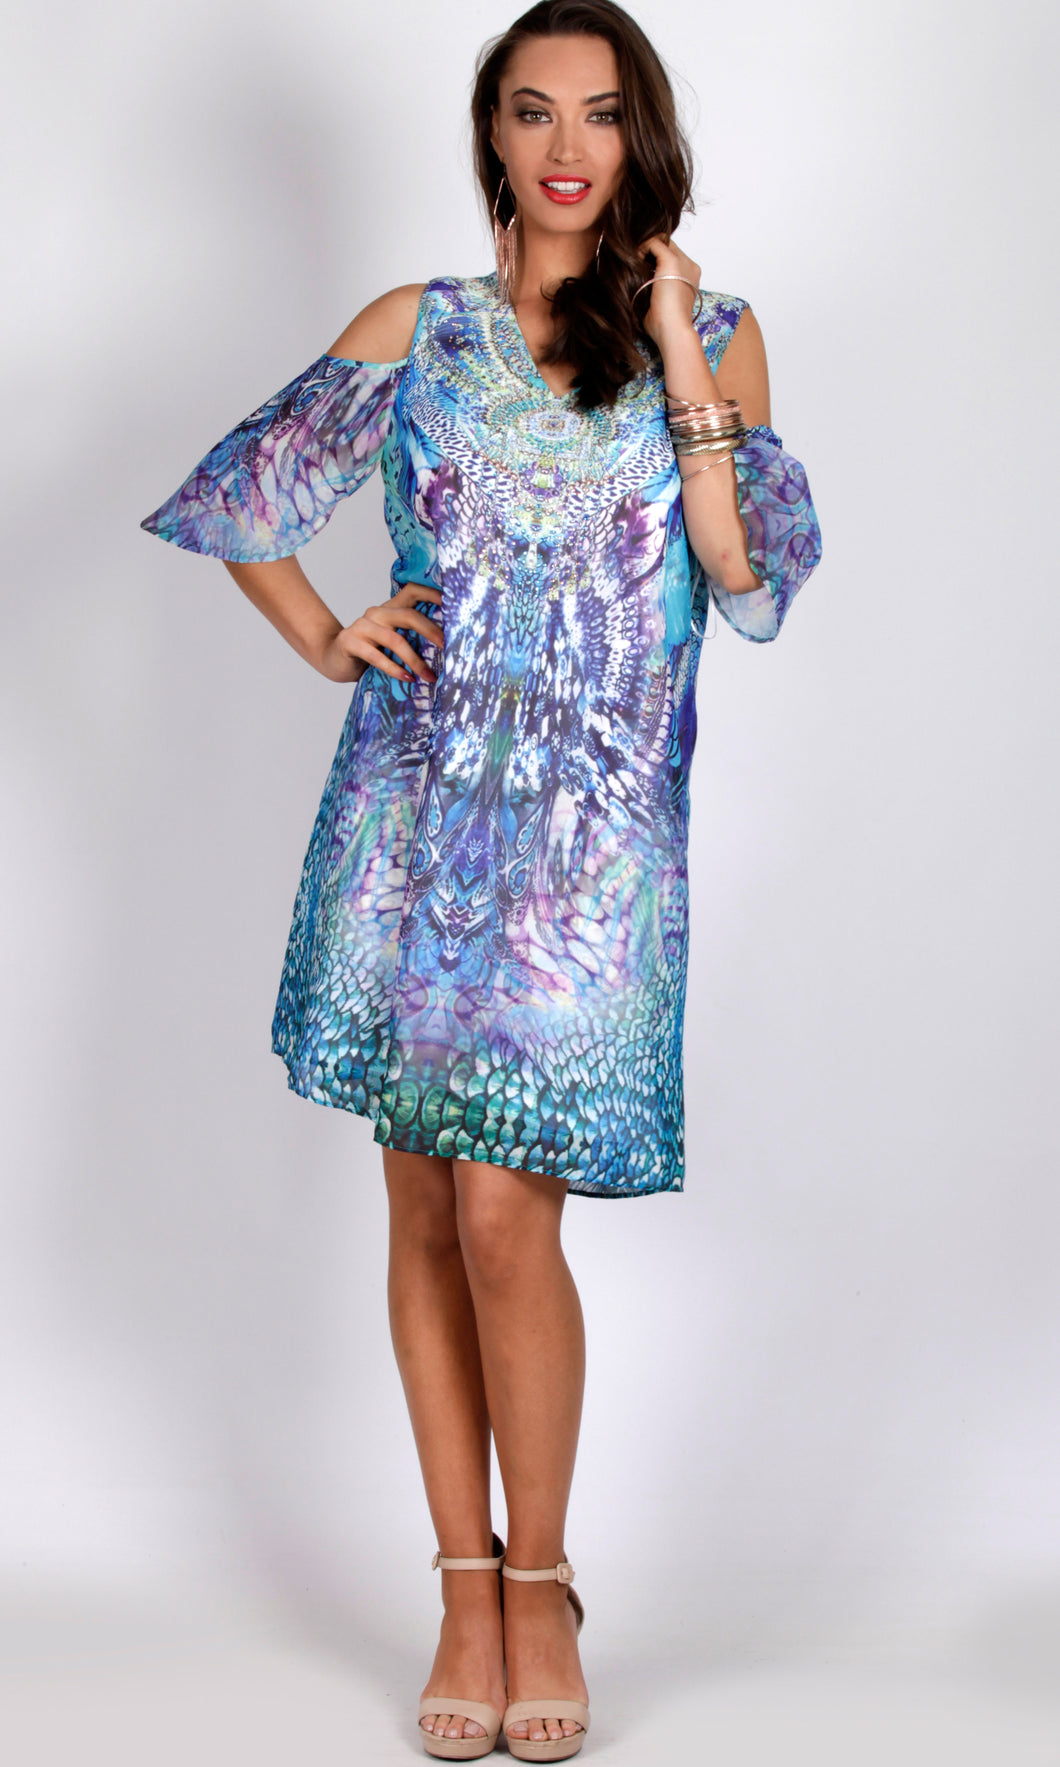 RV0991-1NC BLUE/ PURPLE TUNIC DRESS (Pack)